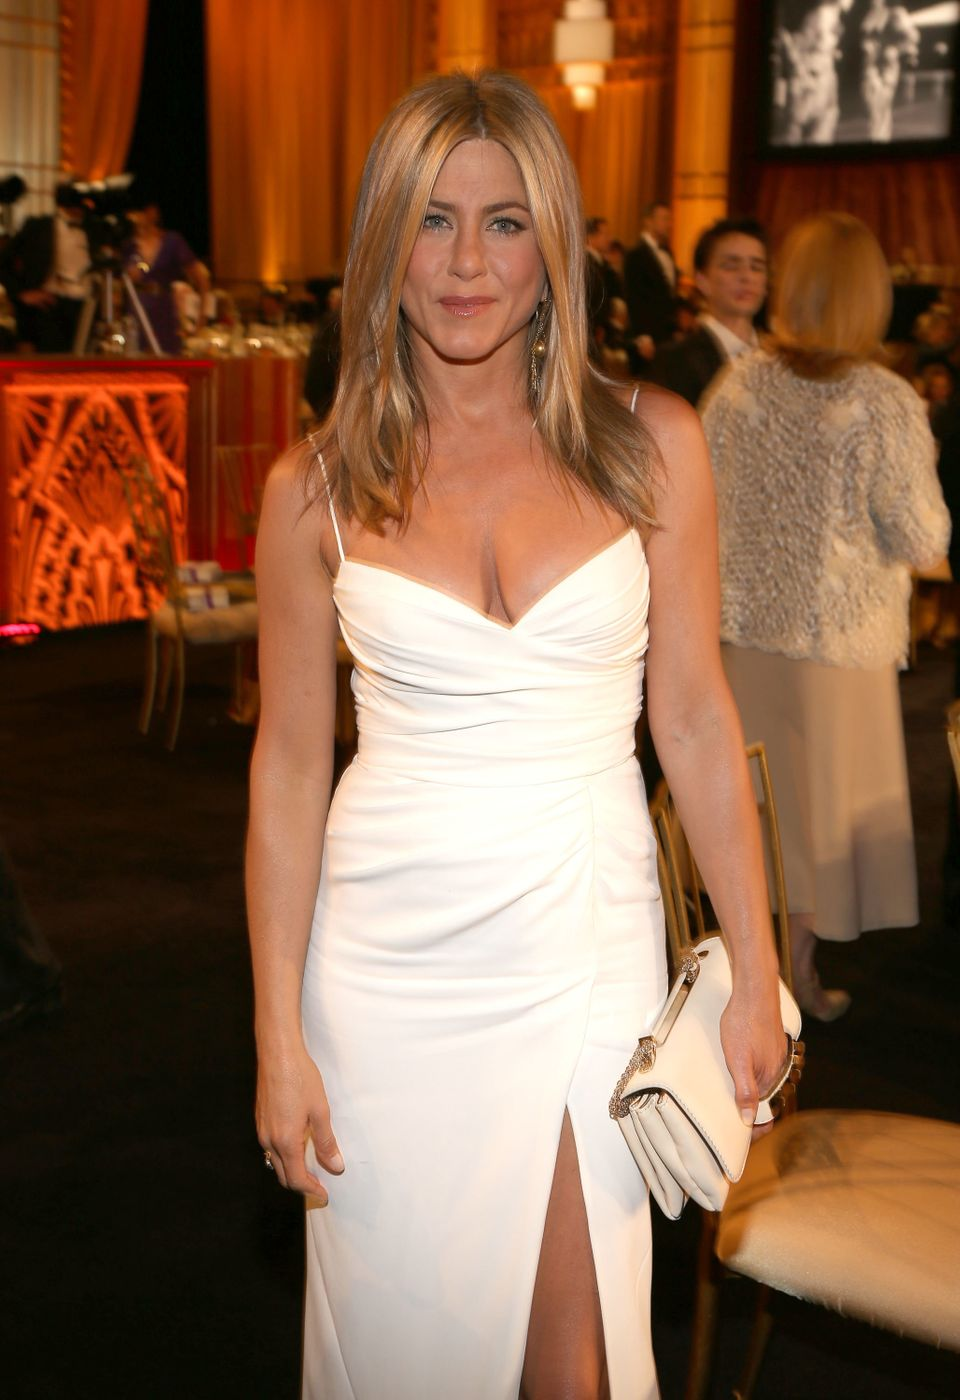 "The <a href=""https://www.huffpost.com/entry/jennifer-aniston-engaged-justin-theroux_n_1771083"">recently engaged star</a> is <"